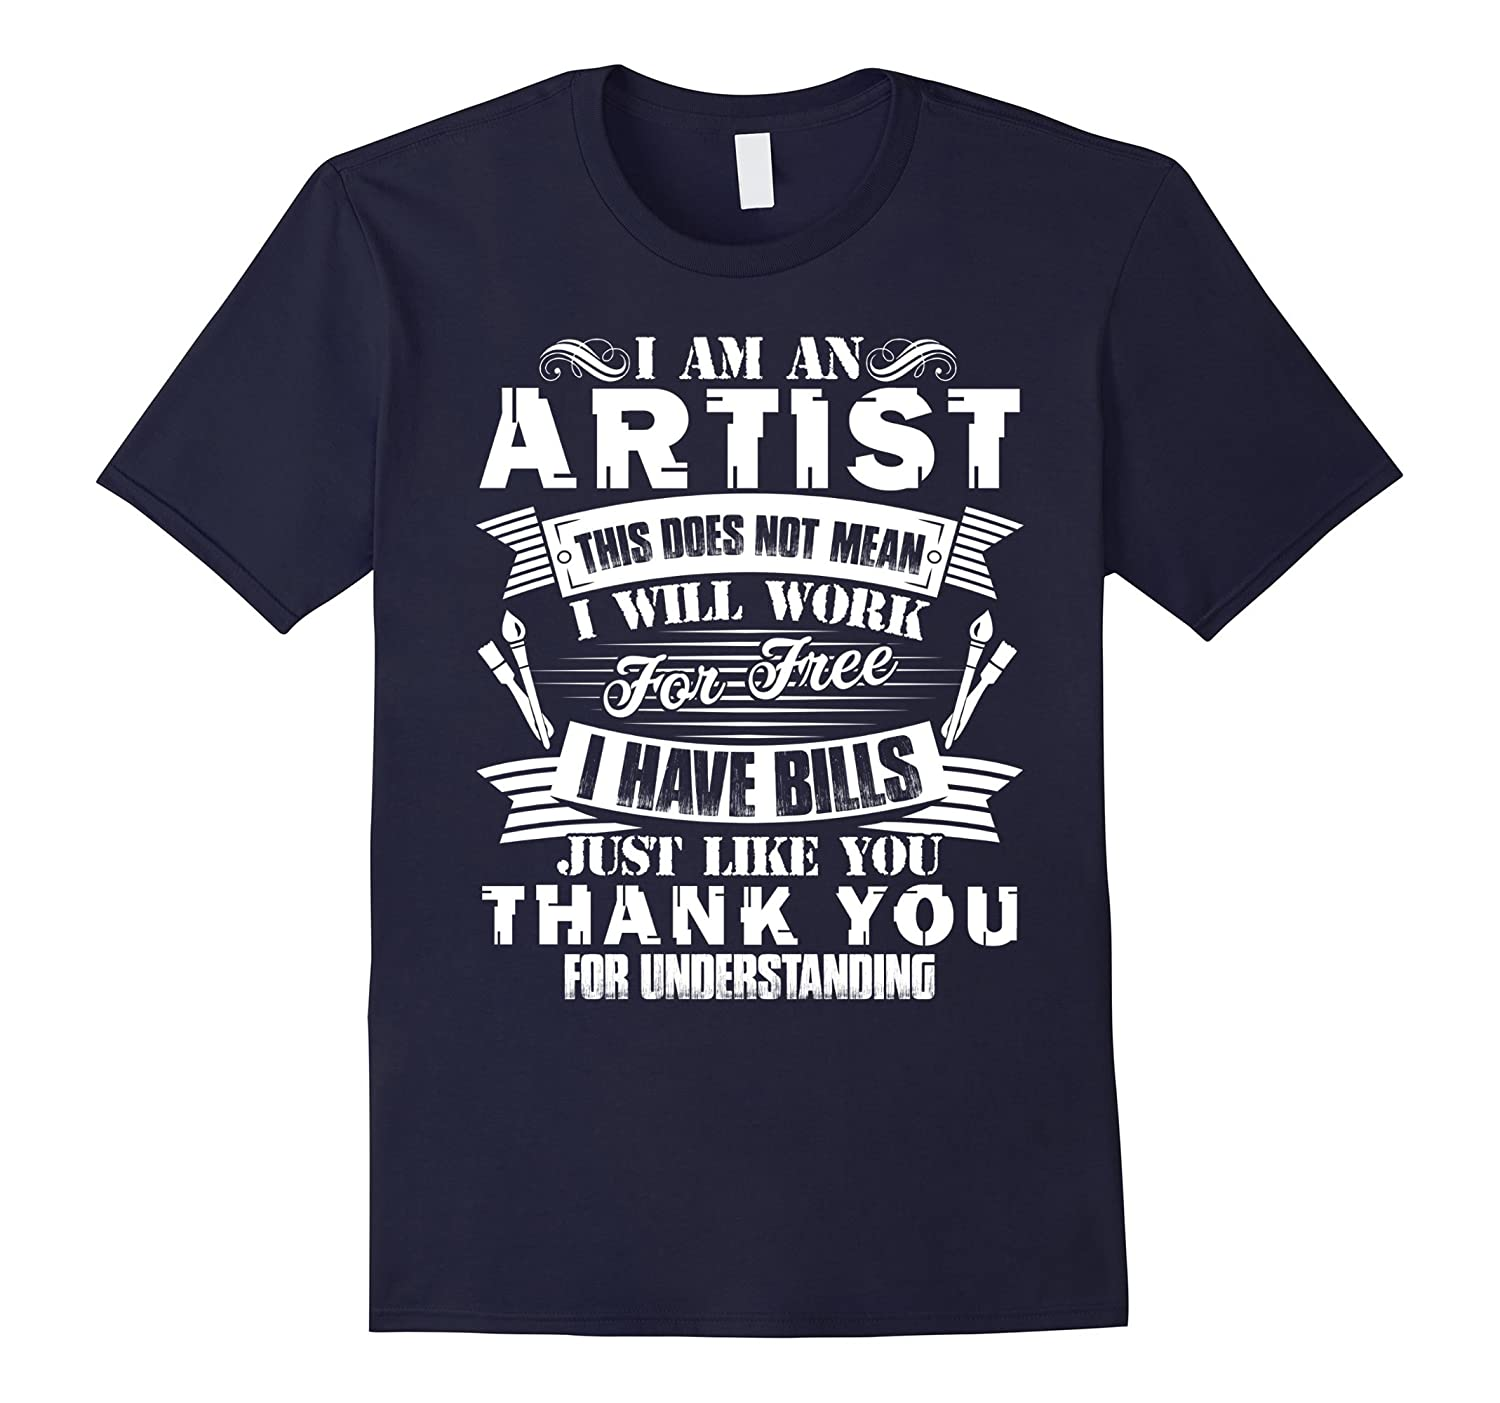 Artist Shirts - I Am An Artist Tee Shirt-TJ